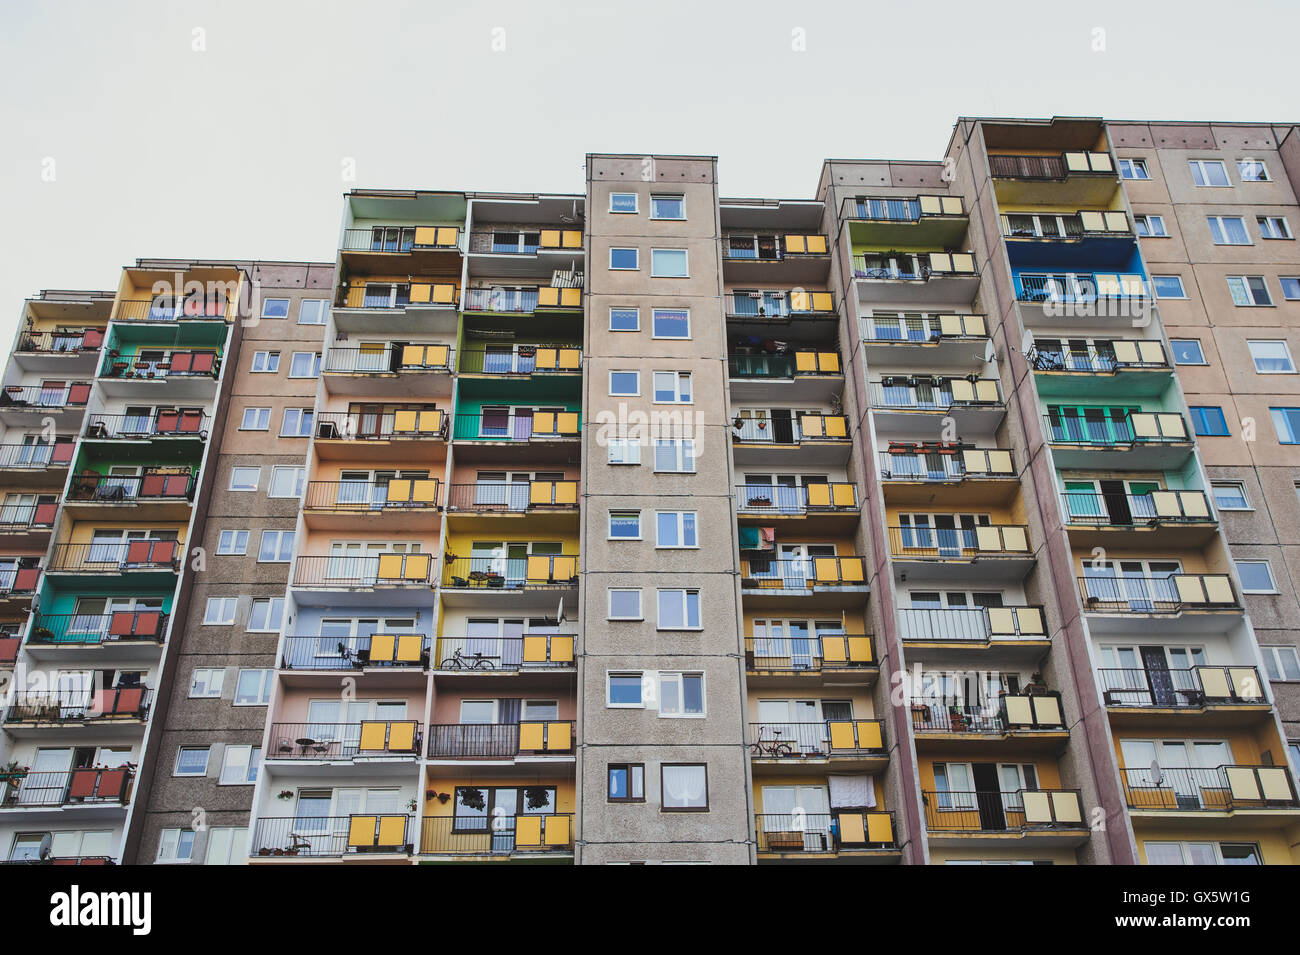 blocks of flats against blue cloudy sky - Stock Image